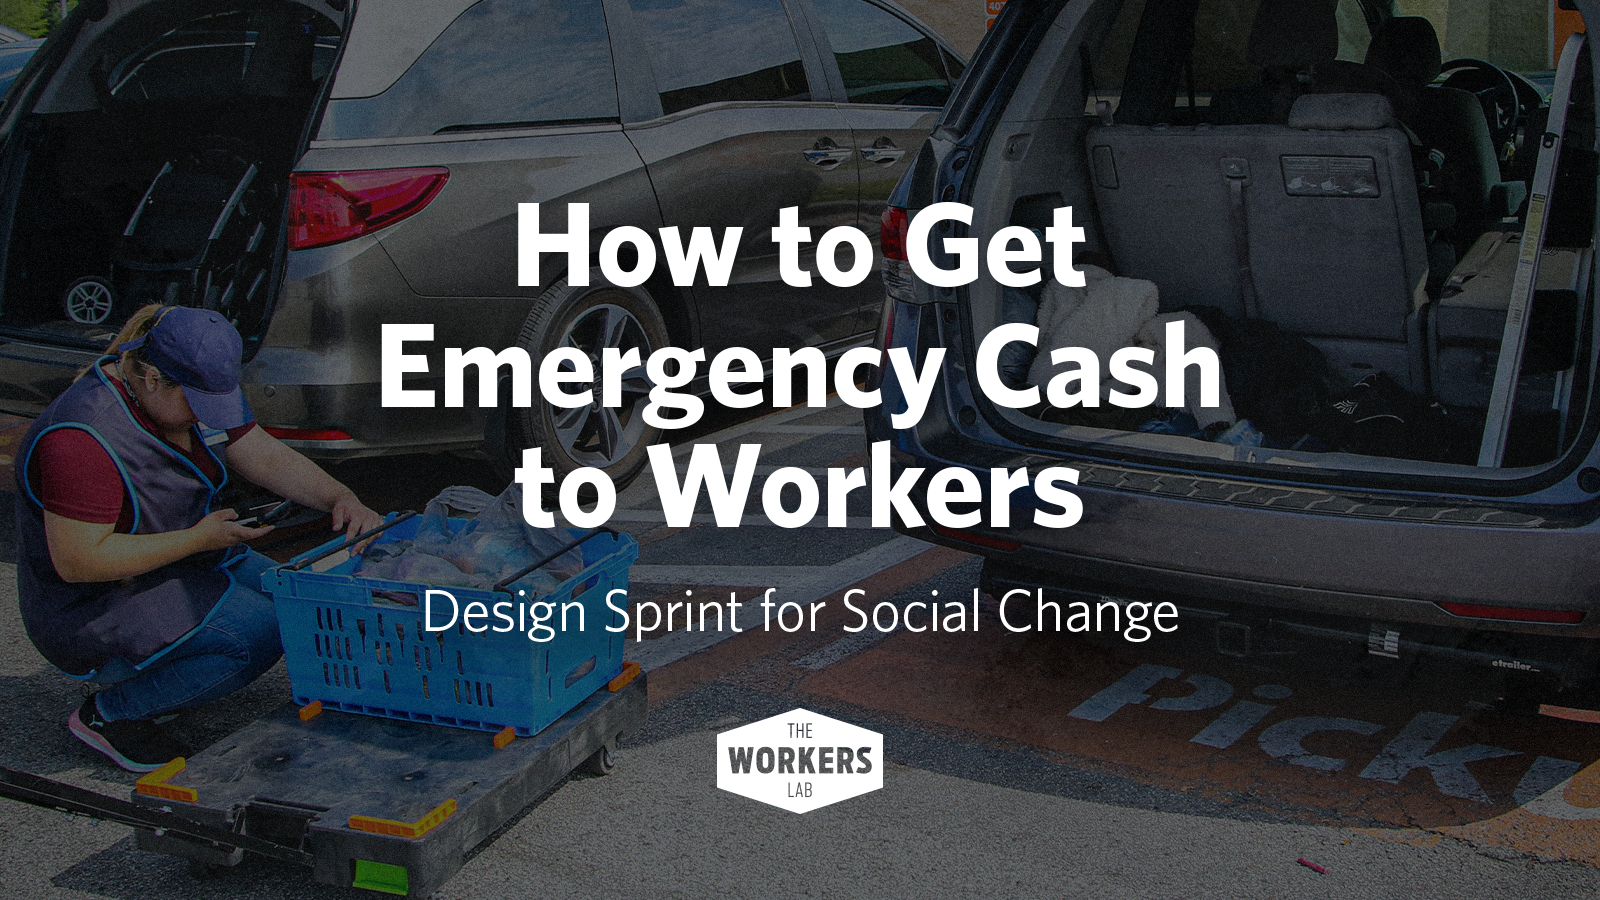 innovation-fund-featured-emergency-cash-to-workers-design-sprint-promo-1600x900